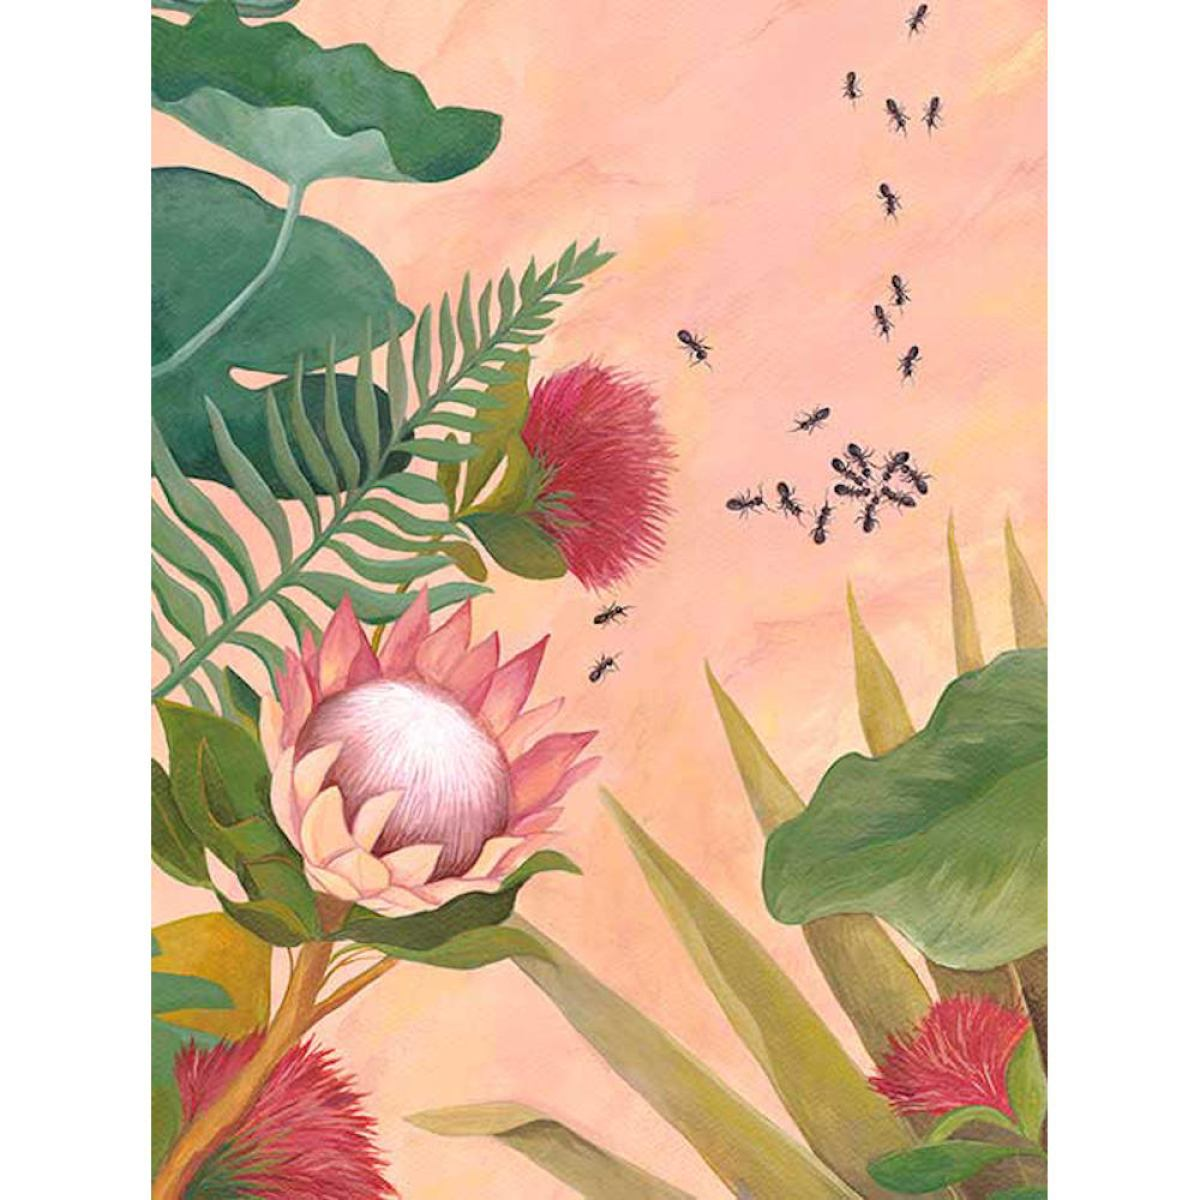 Art Print with Flowers and Ants on Non-Woven Paper